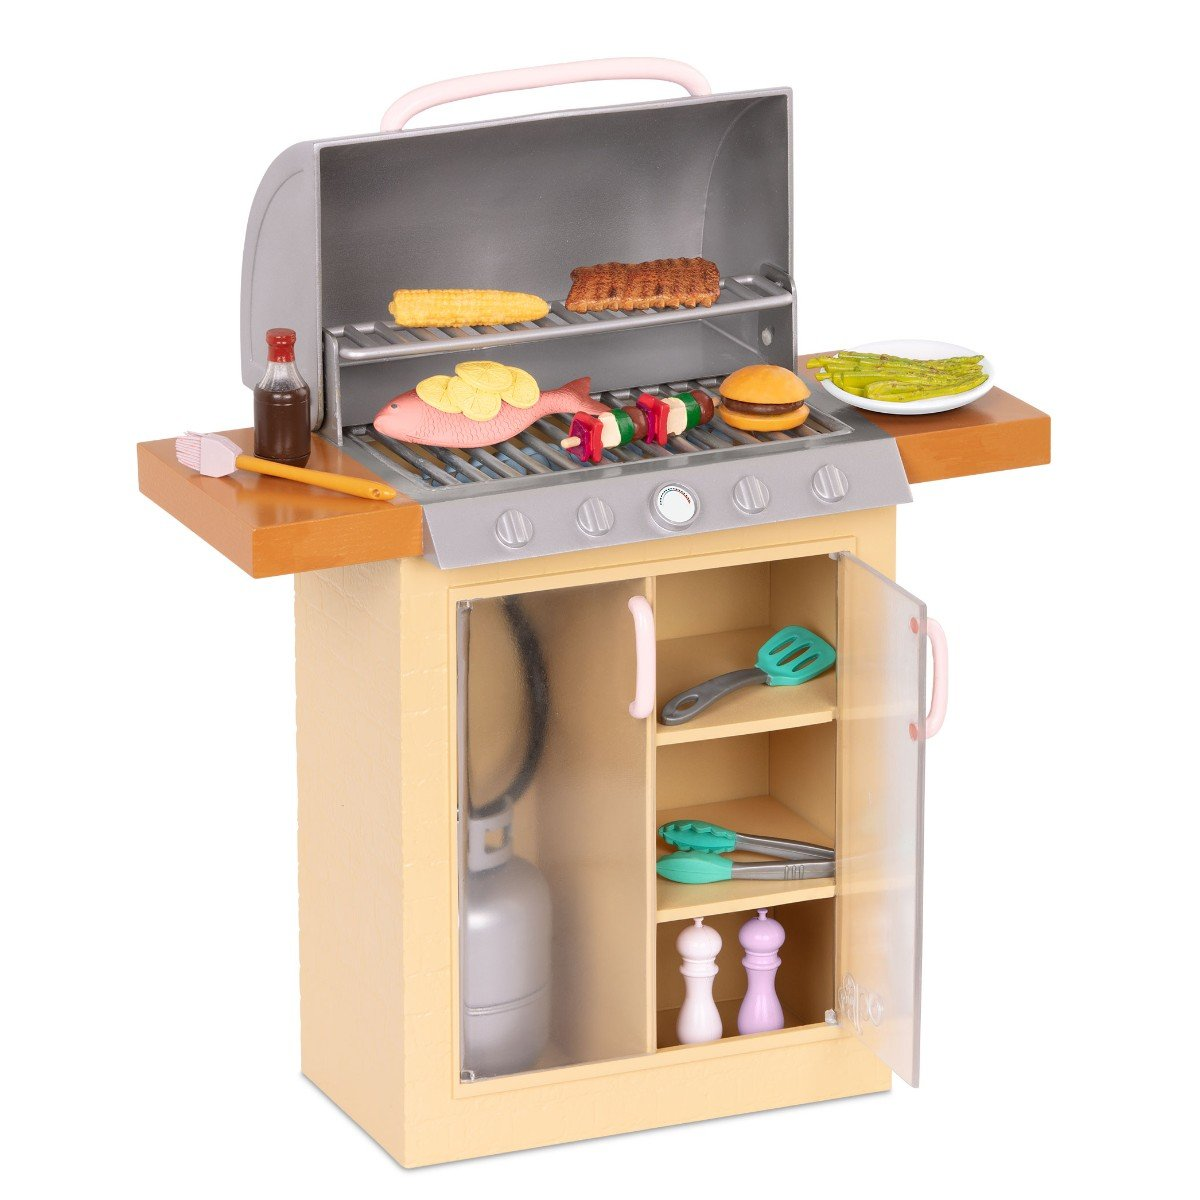 Our Generation - Backyard Grill – BBQ (737954)